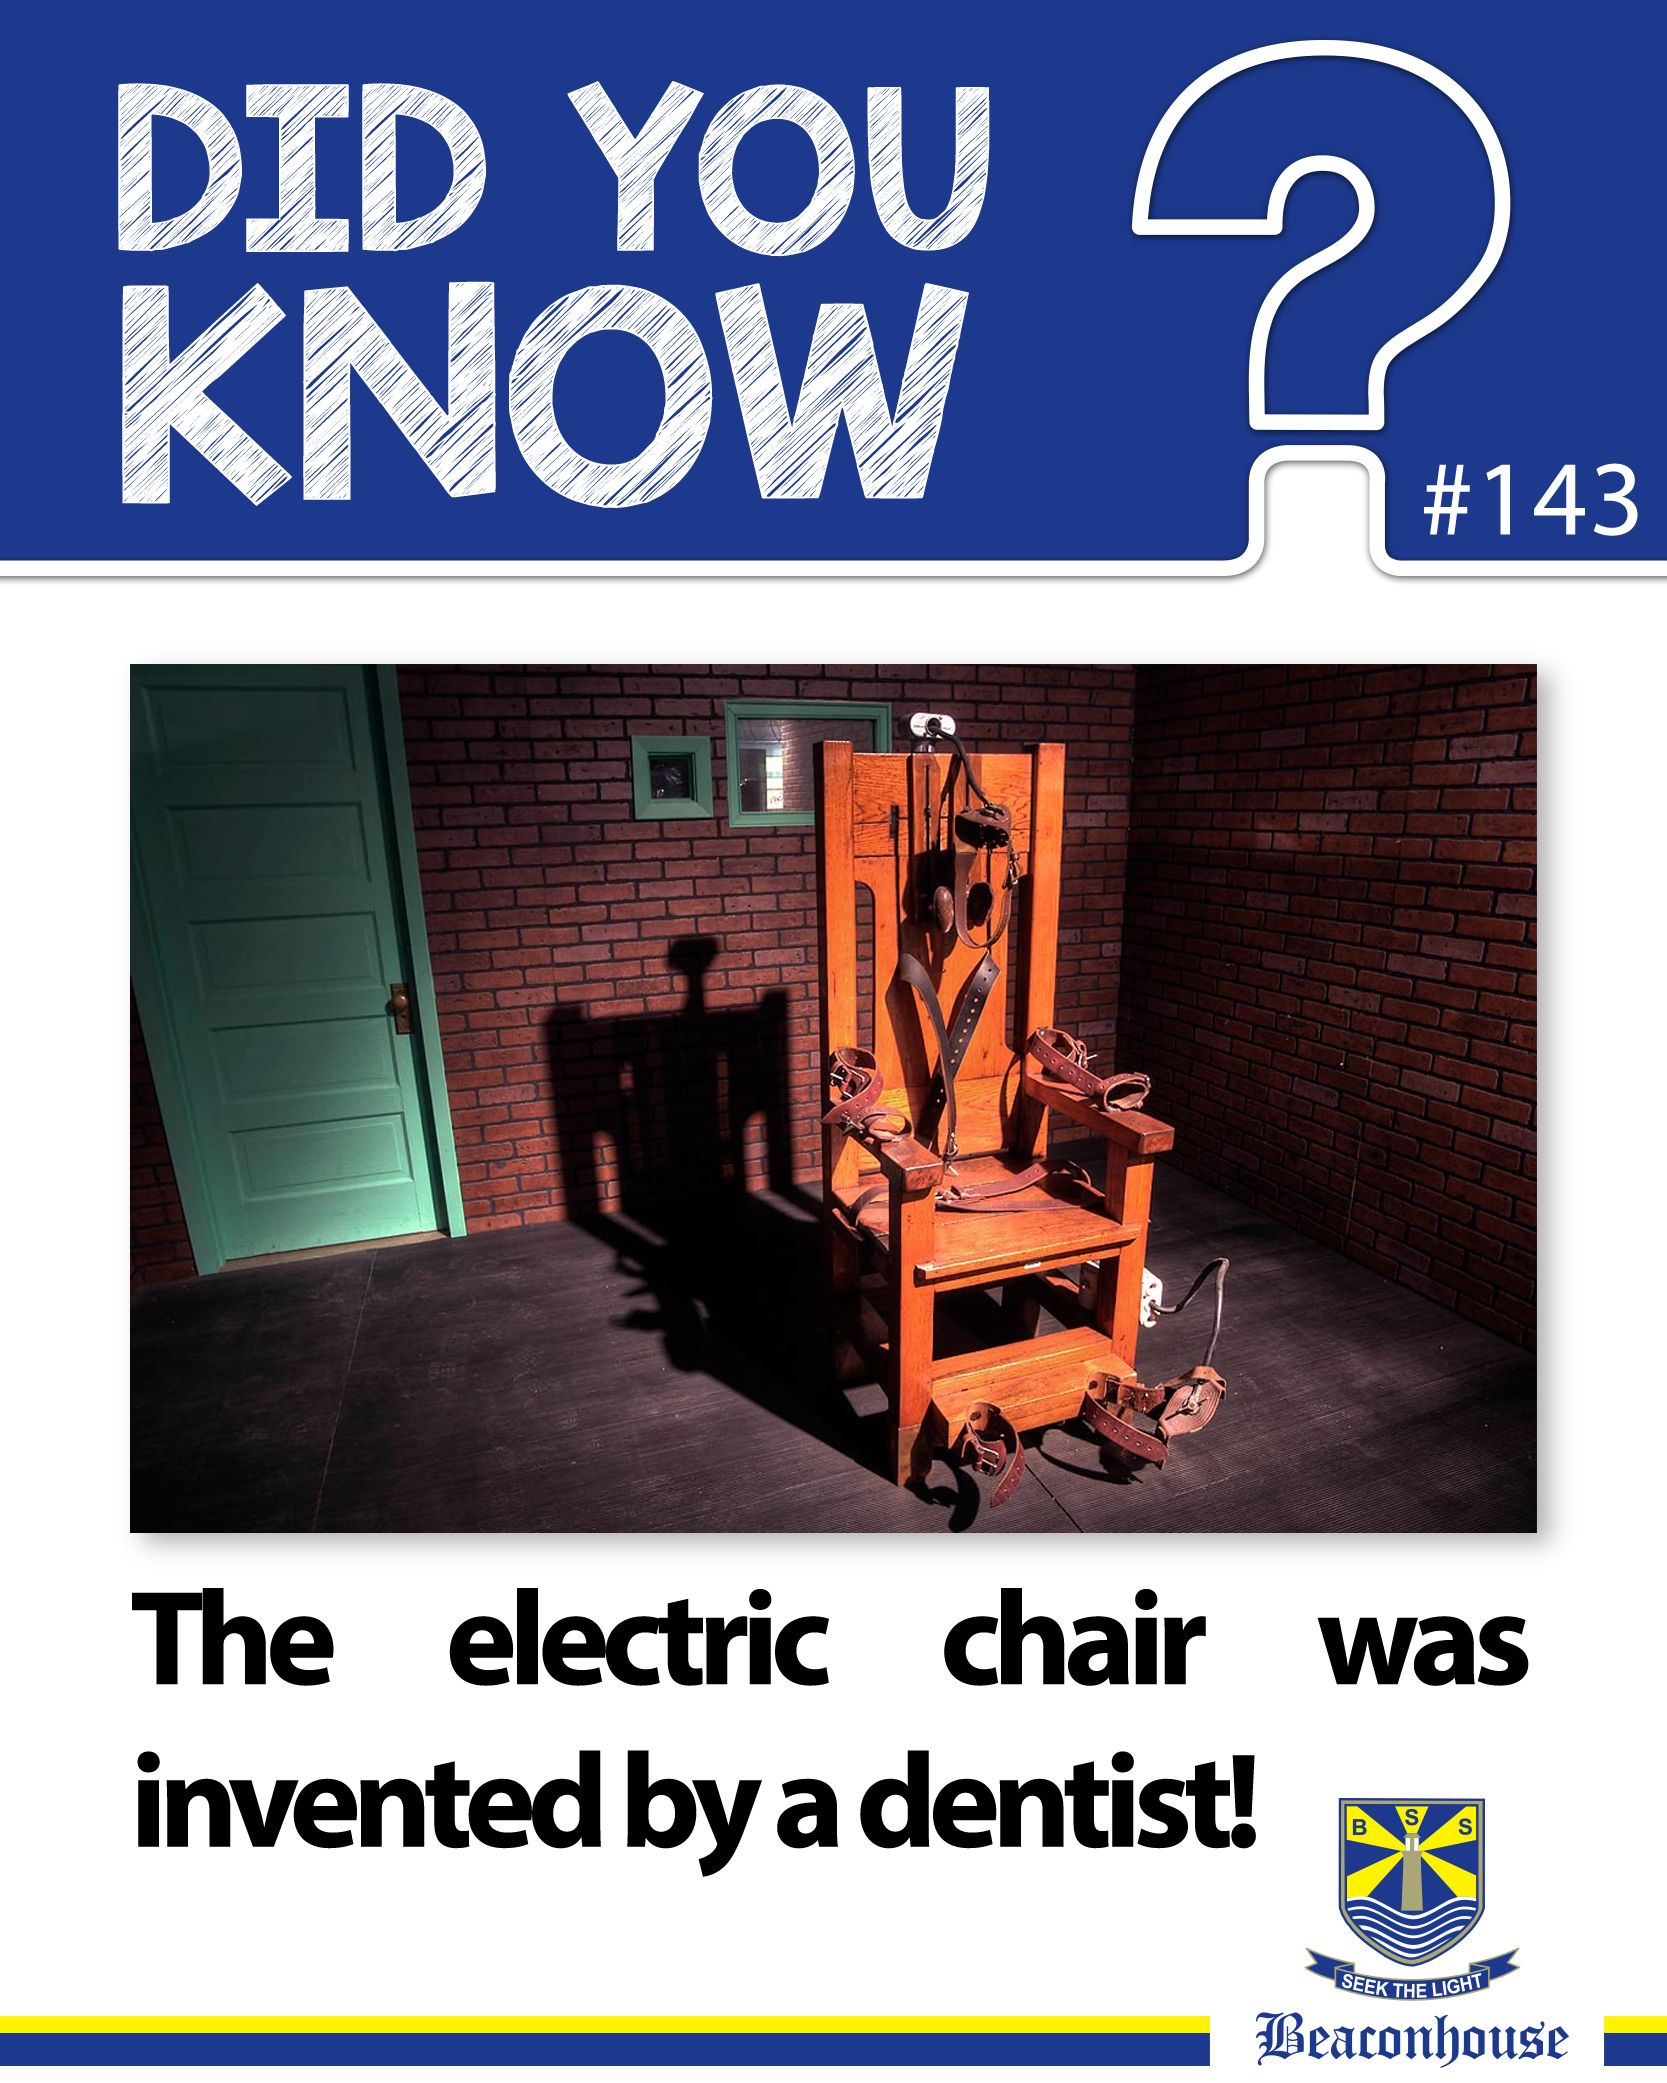 DidYouKnow The electric chair was invented by a dentist